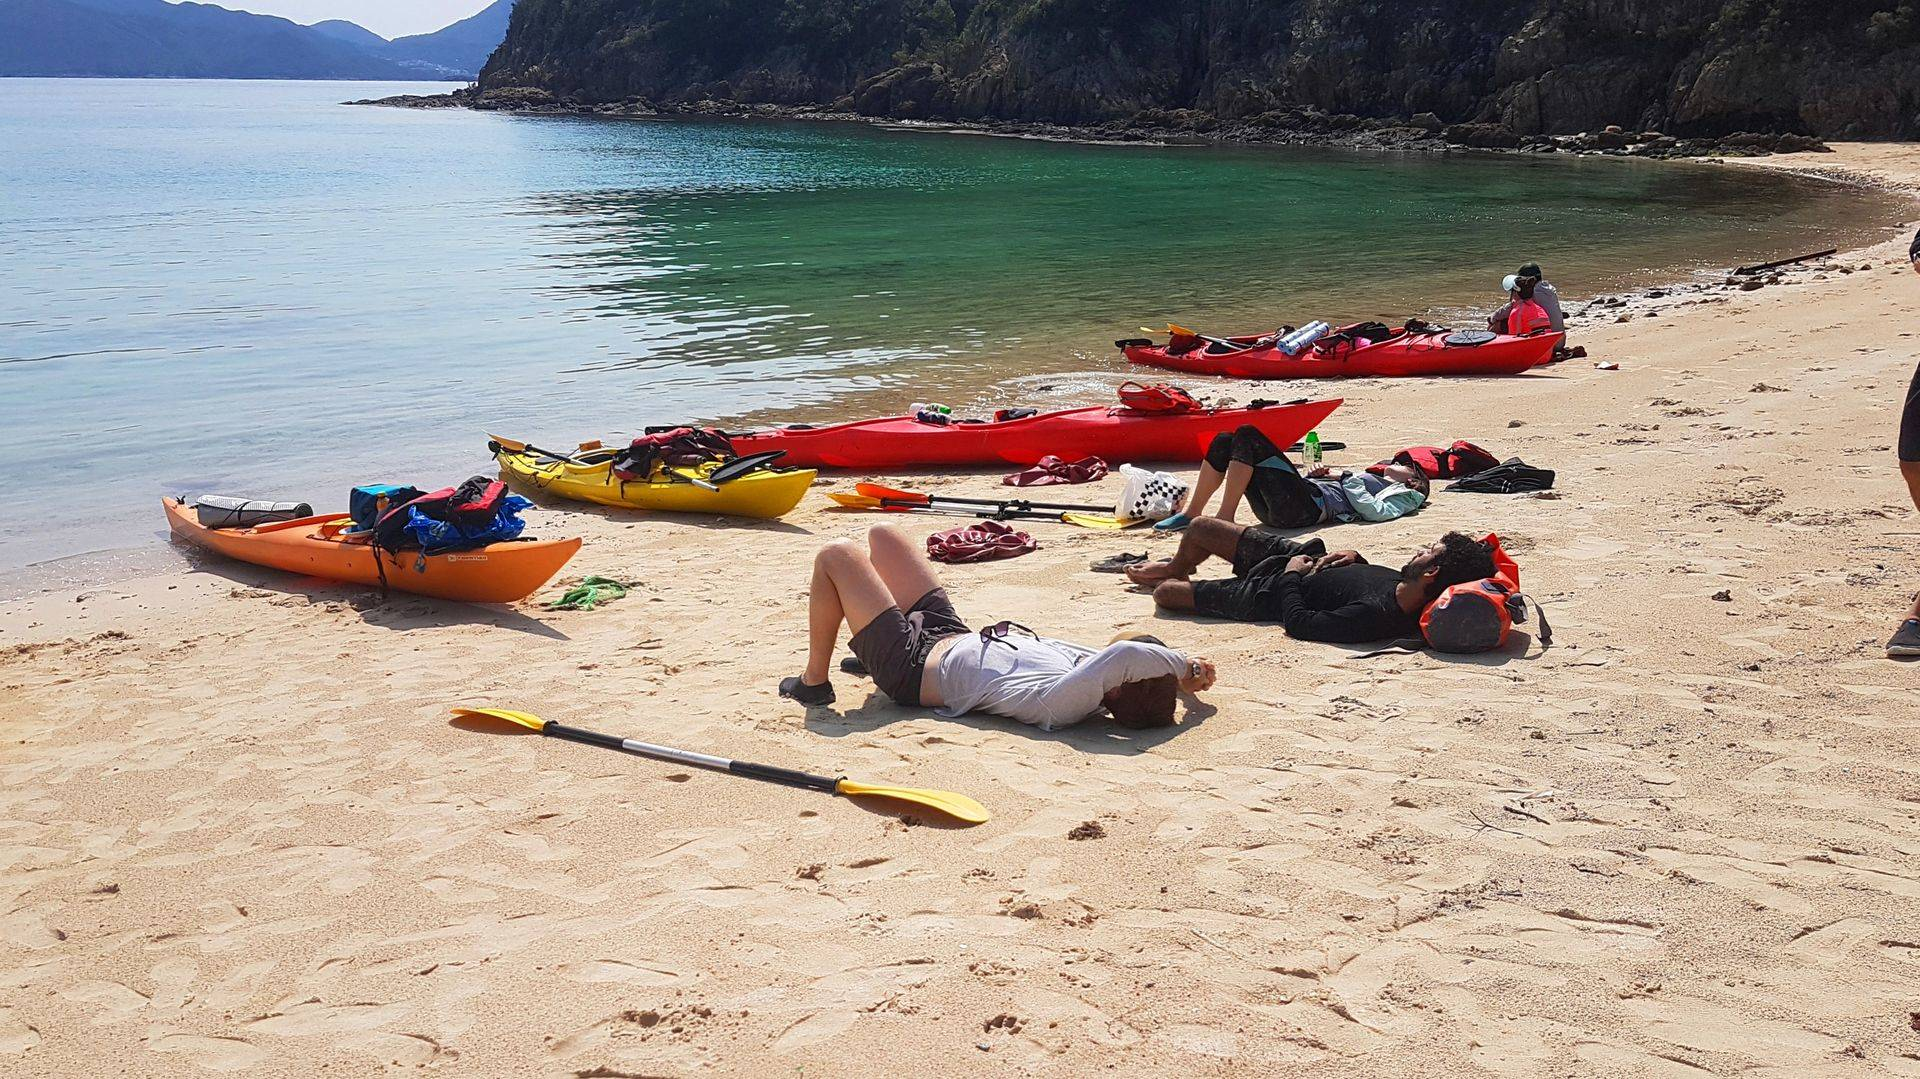 03 Mar 2019 UNESCO 2 day sea kayak trip Hong Kong